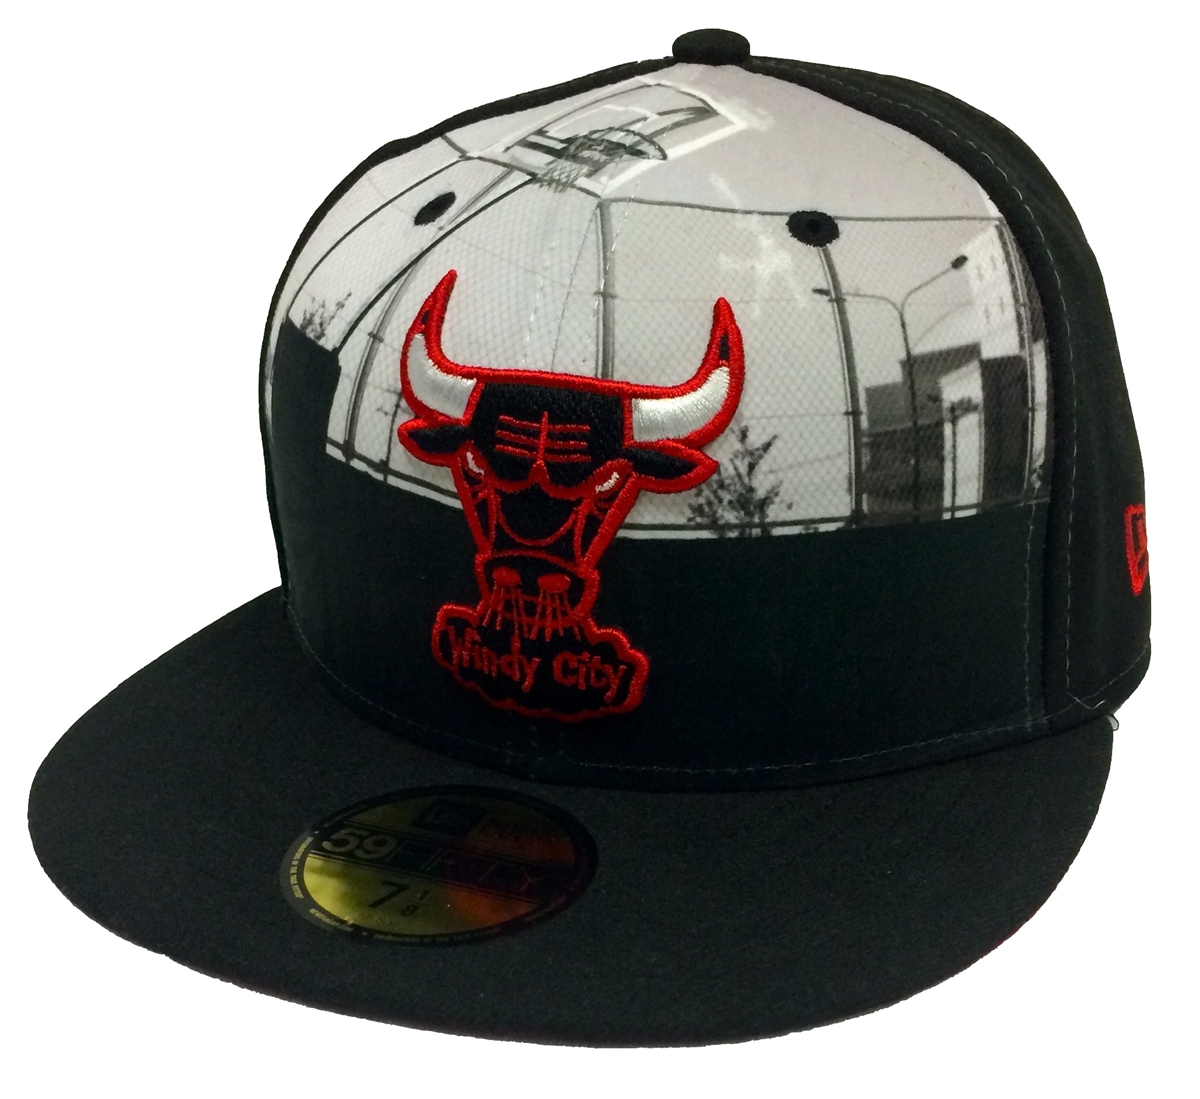 b4a42402007 New Era 59Fifty Round D Way Chicago Bulls Black Fitted Cap